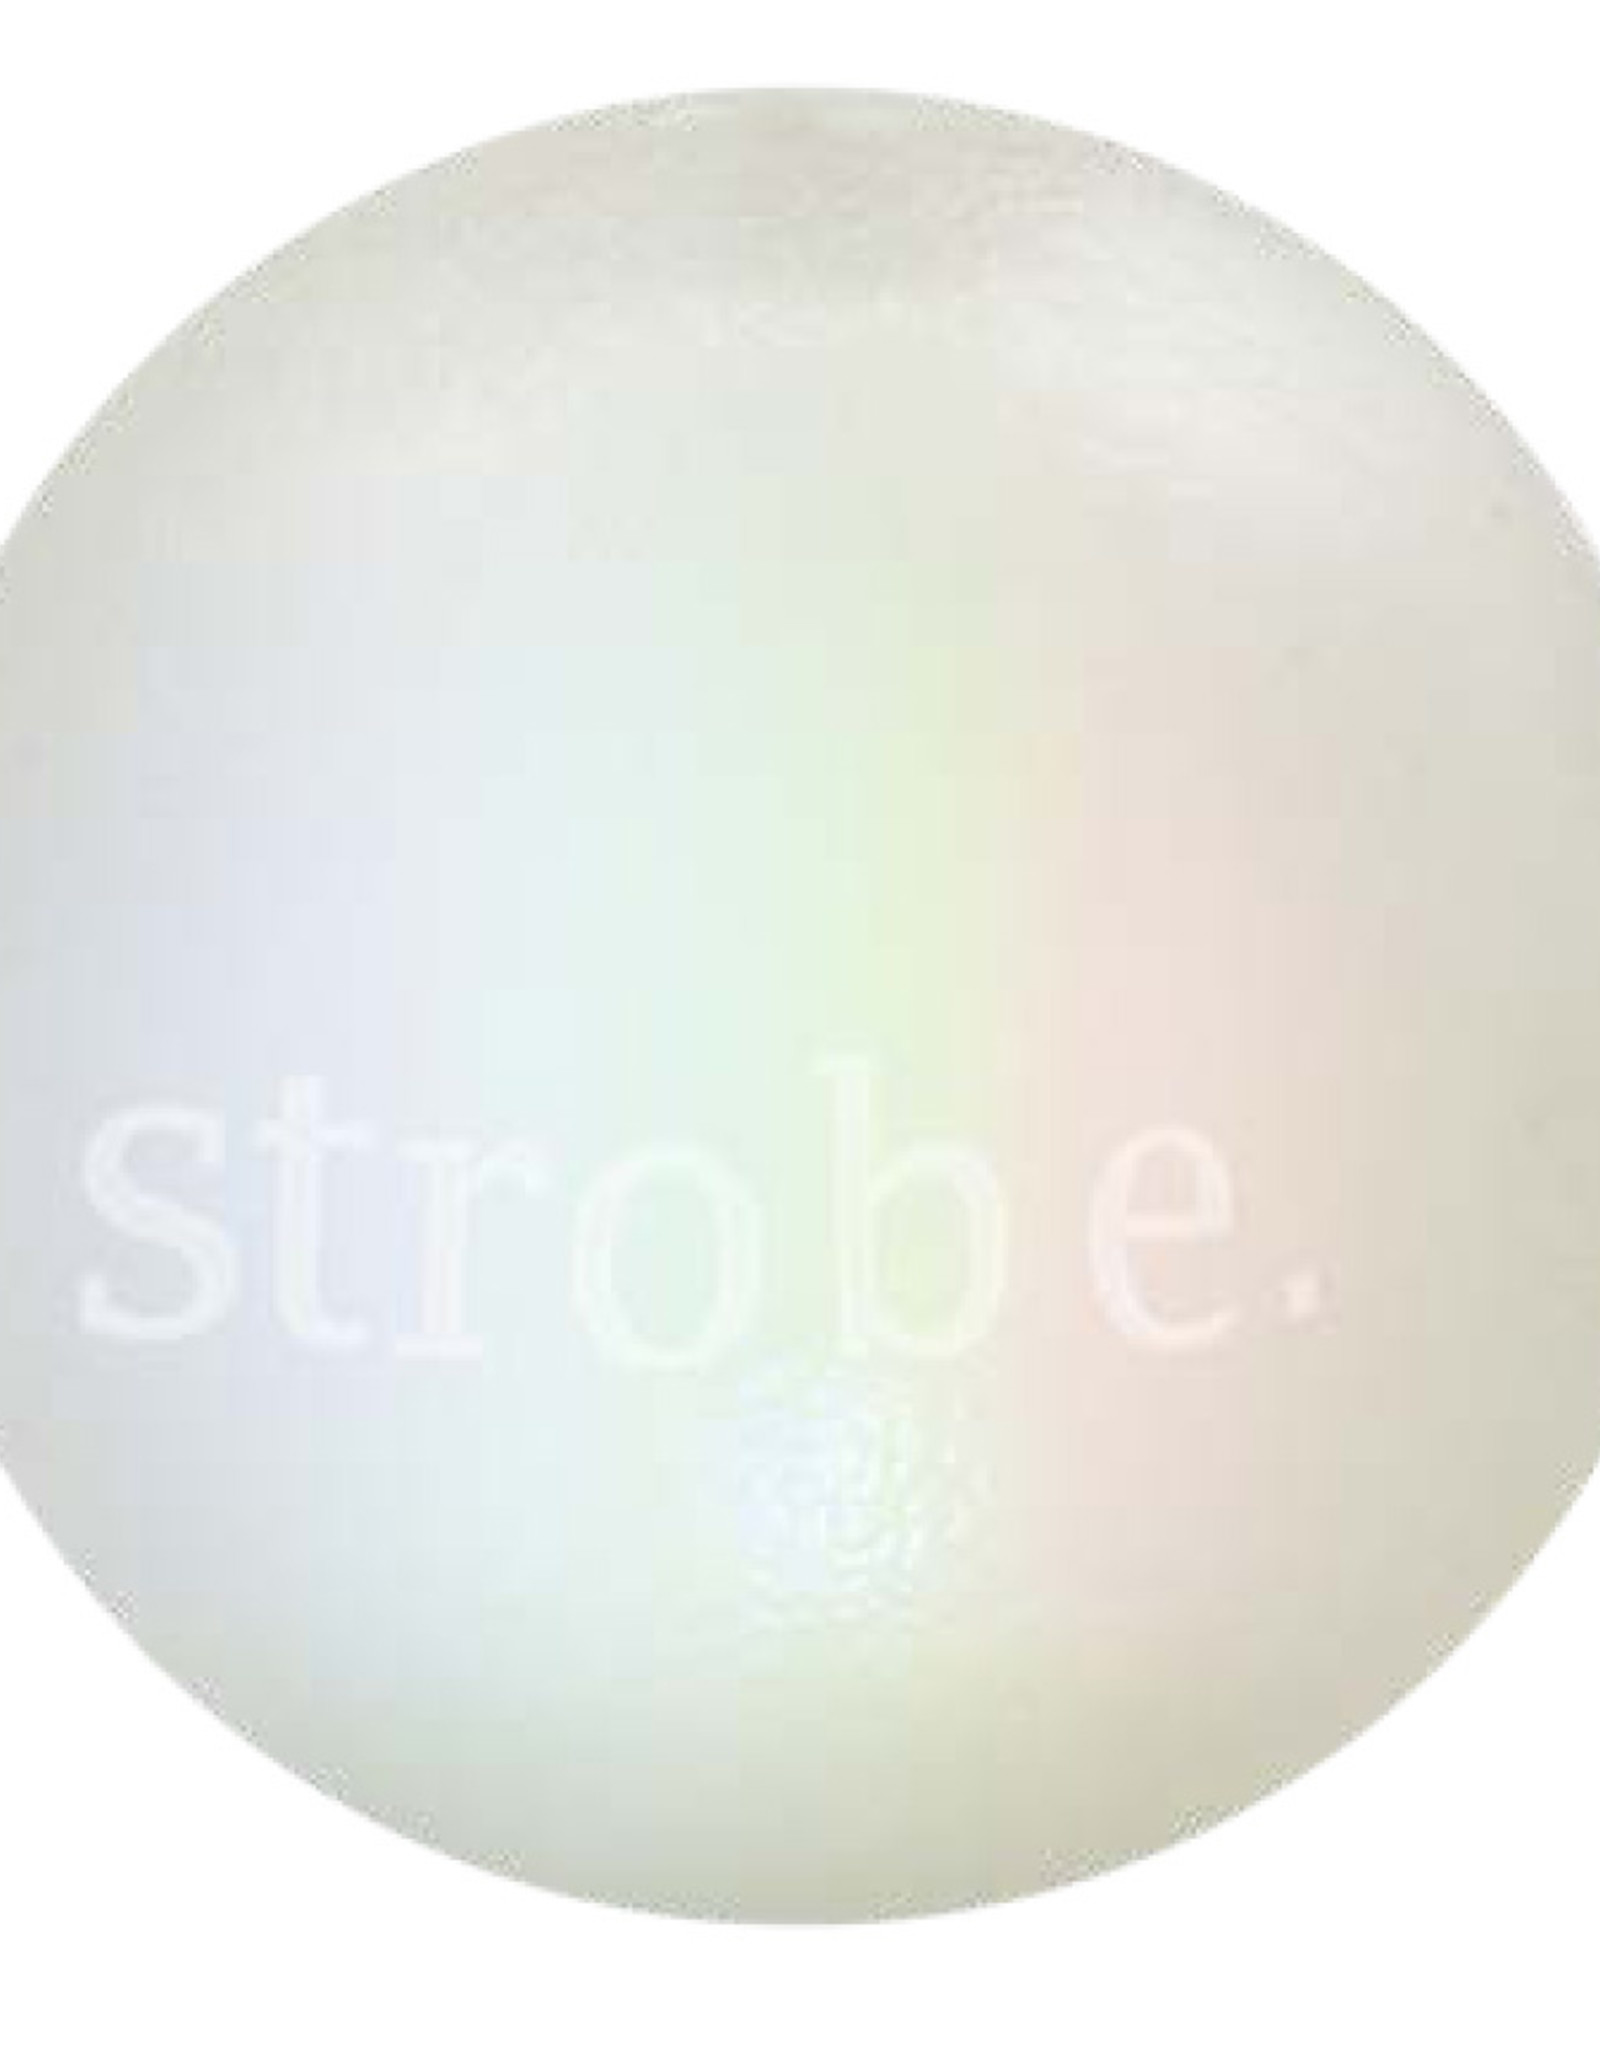 Planet Dog Orbee-Tuff LED Strobe Ball